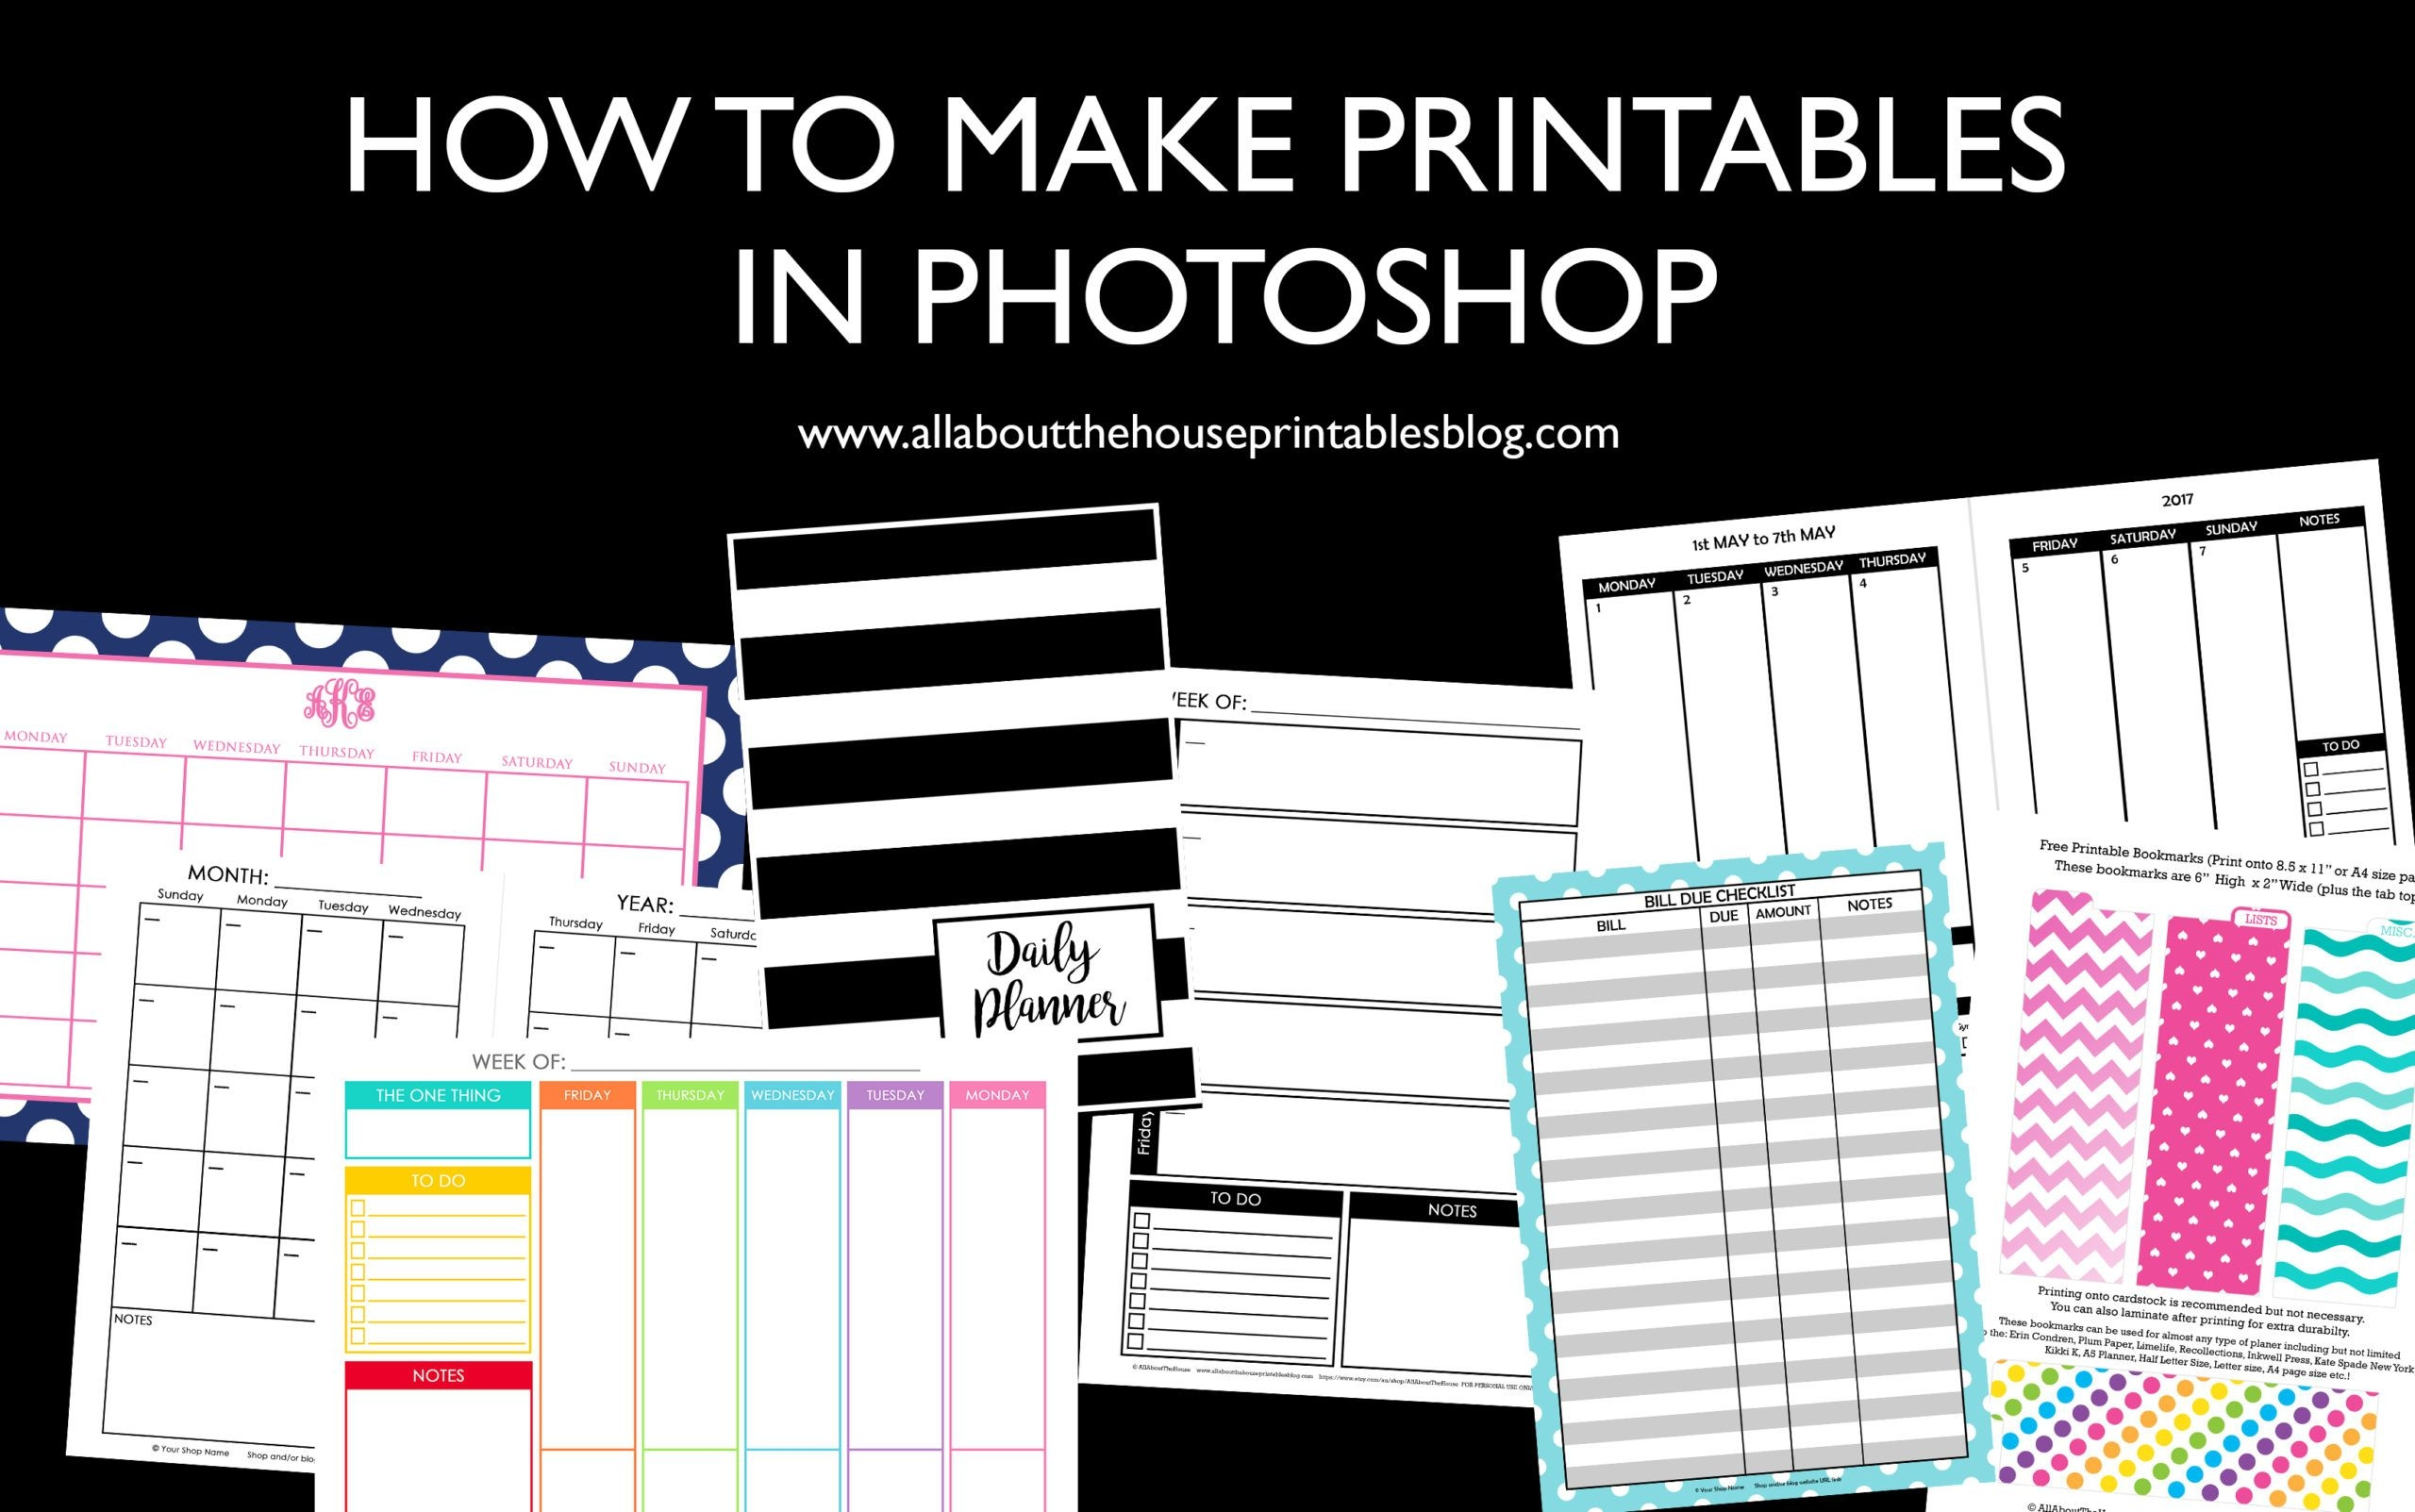 How To Make Printables In Photoshop (stepstep Video